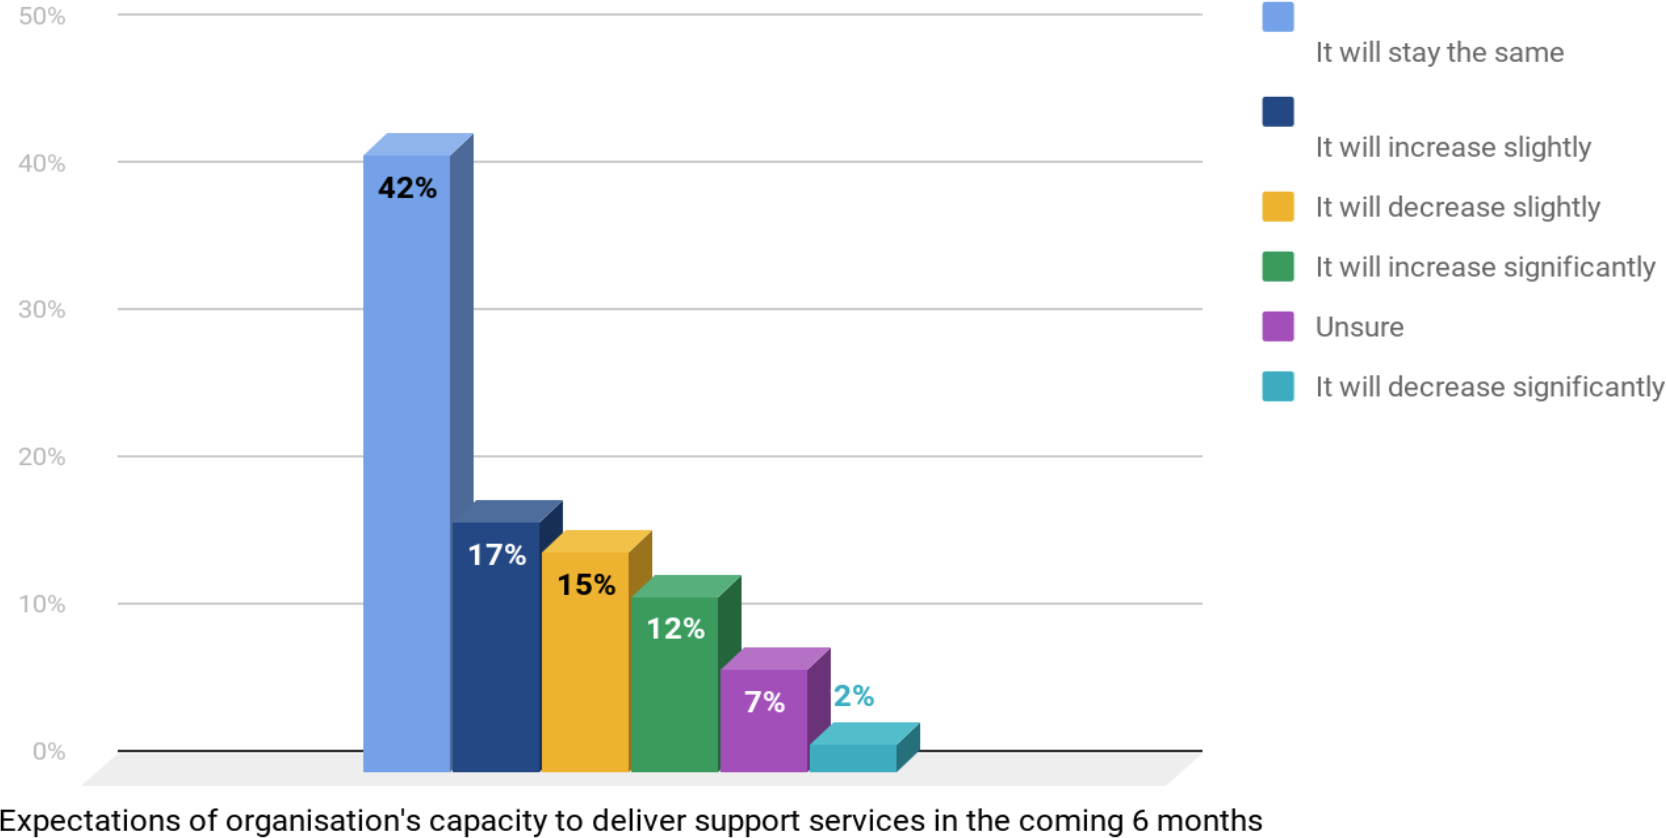 How do you think your organisation's capacity to delivery support services will change over the next 6 months? (diagram)